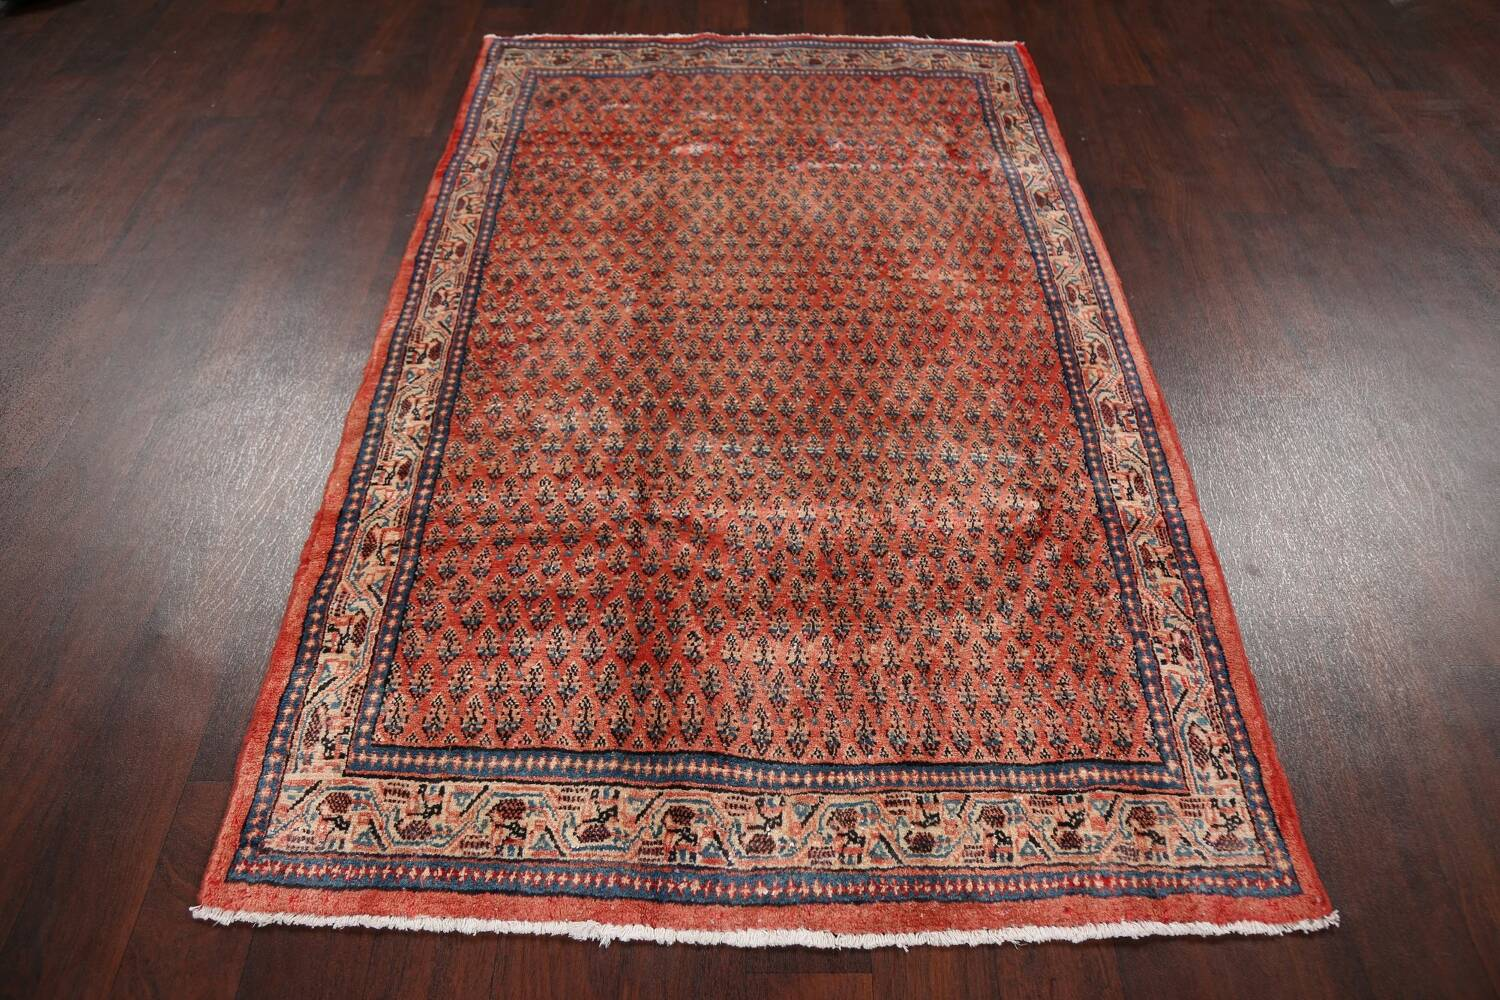 Vintage All-Over Boteh Botemir Persian Area Rug 4x7 image 18